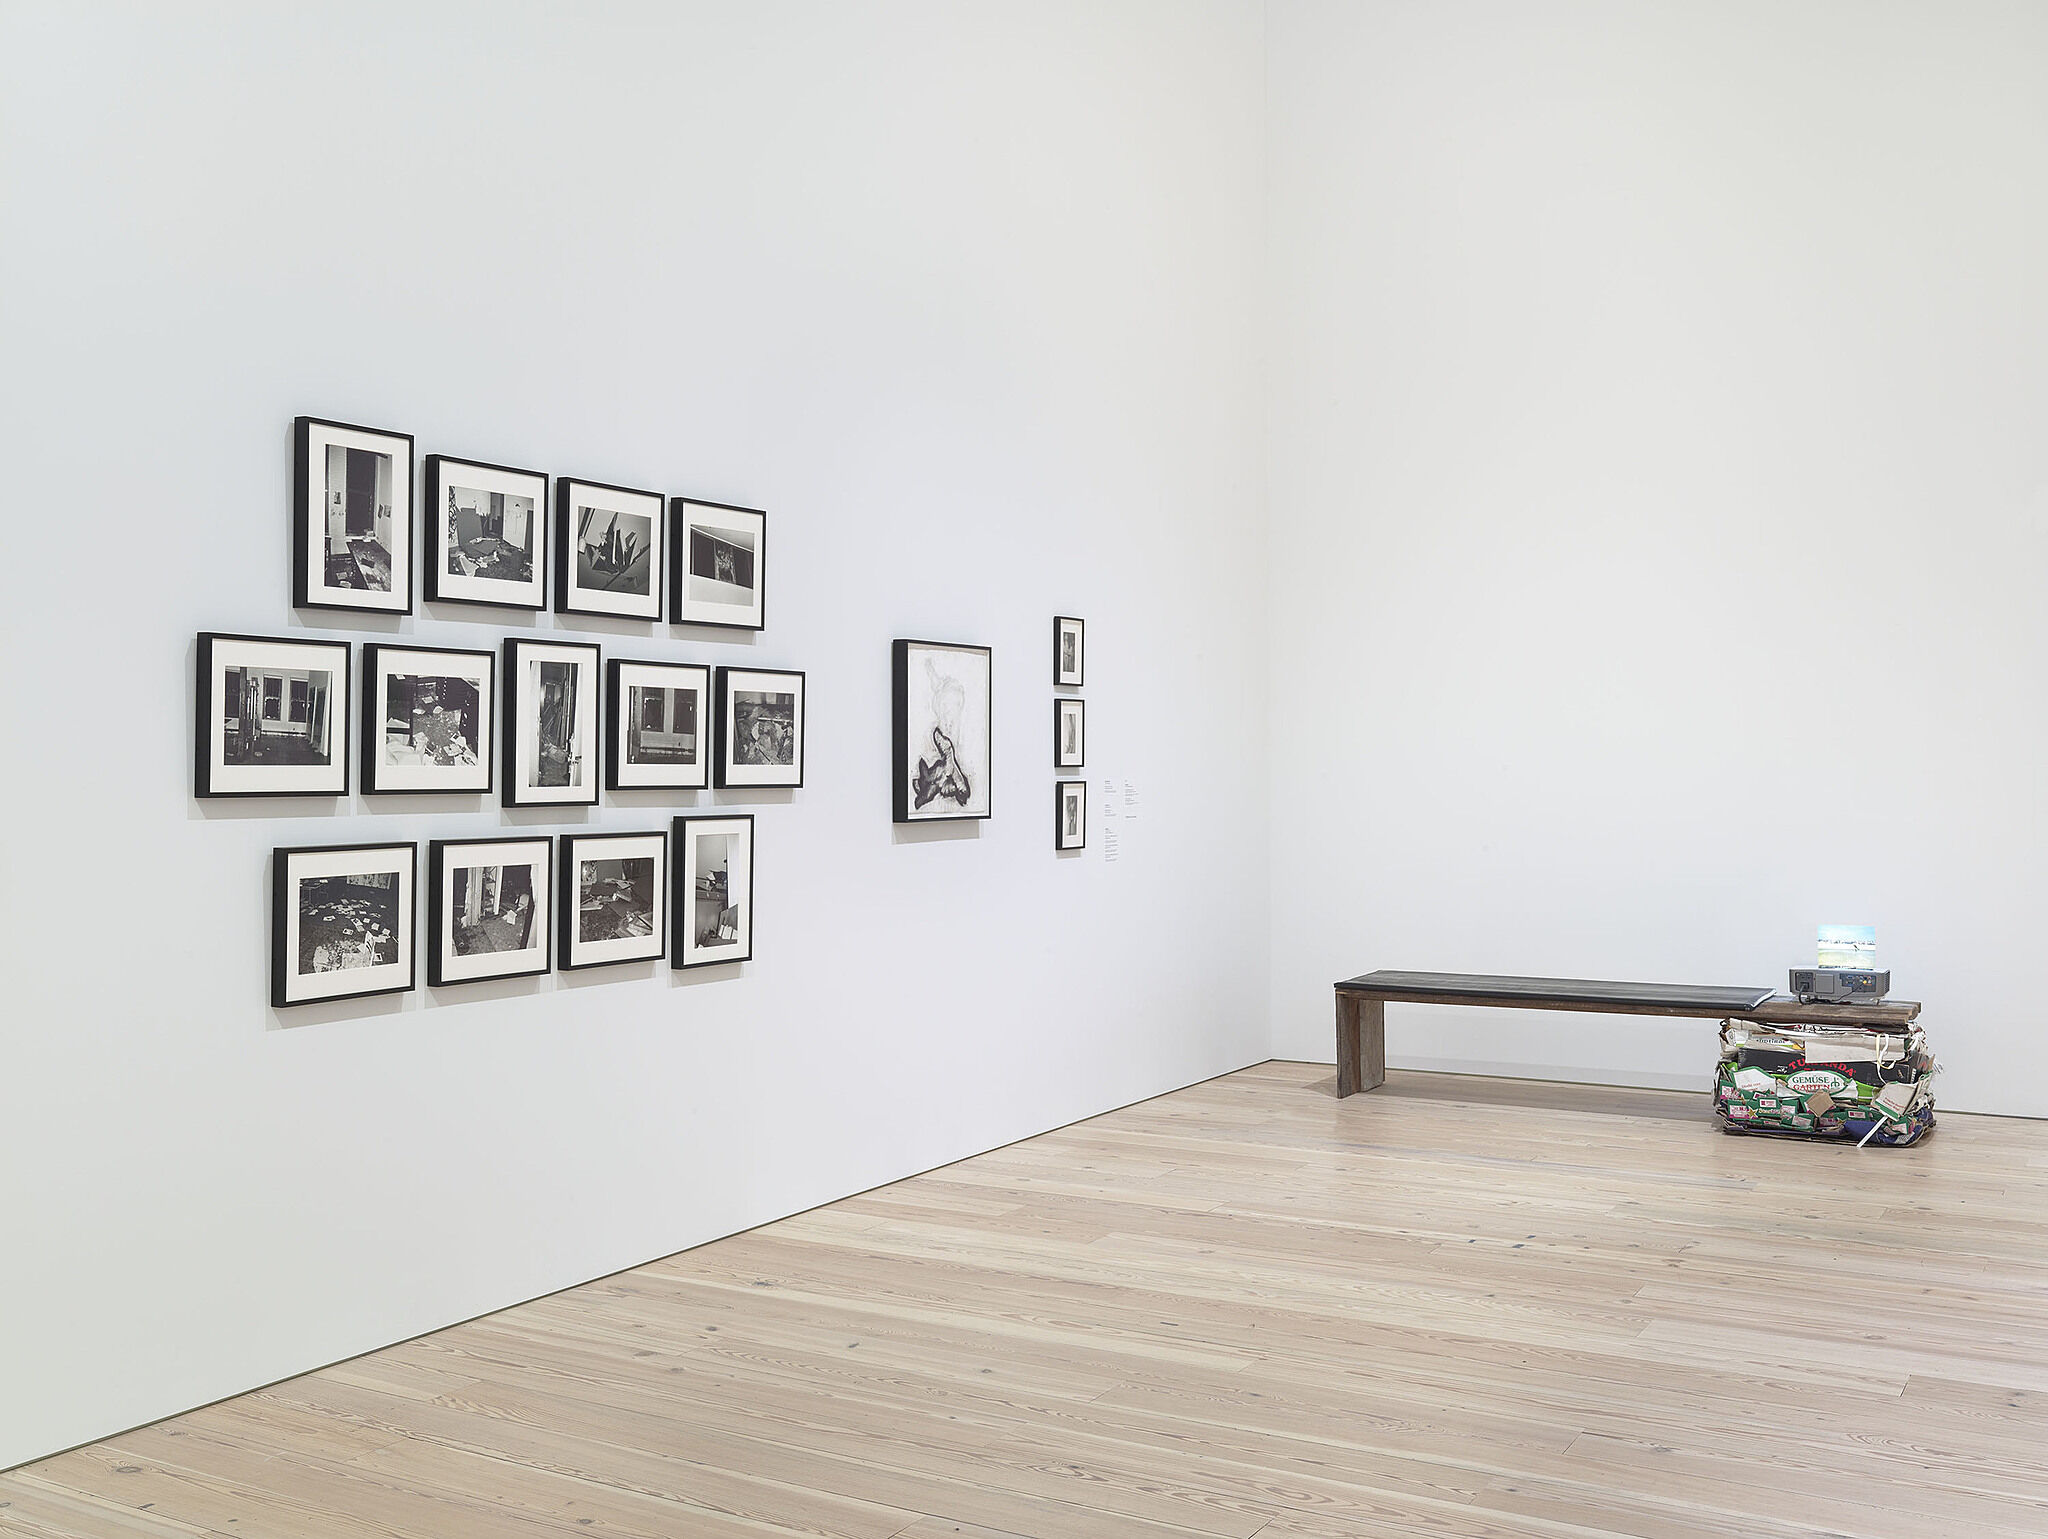 A series of photos on the wall and a sculpture on the floor.